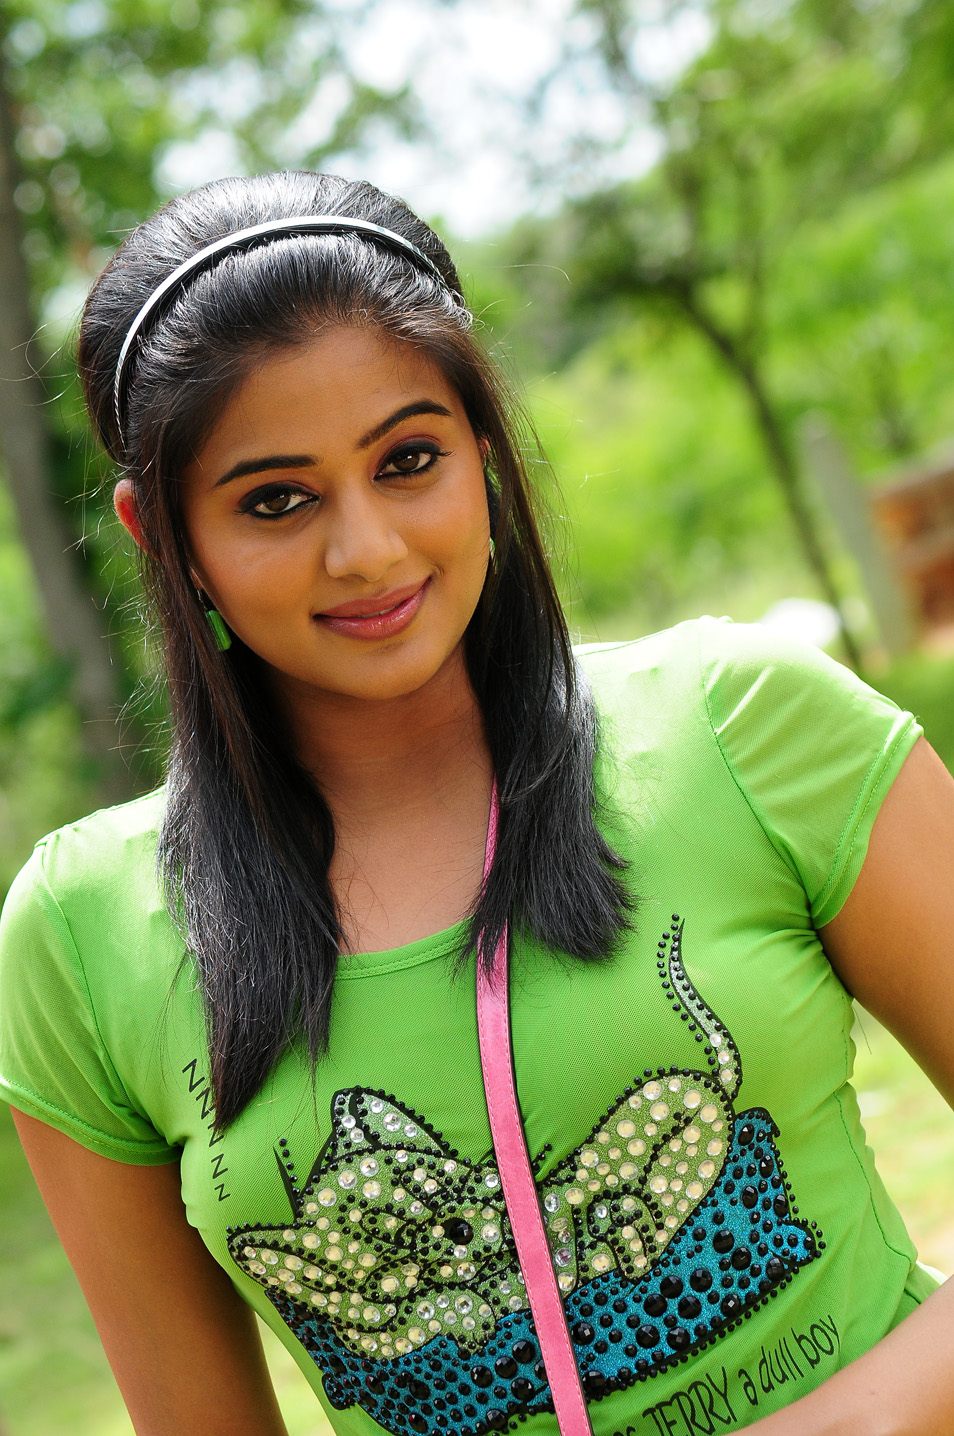 priyamani actress shirt latest movie indian telugu stills tikka south tollywood cute dress without film photoshoot tight tamil spicy very